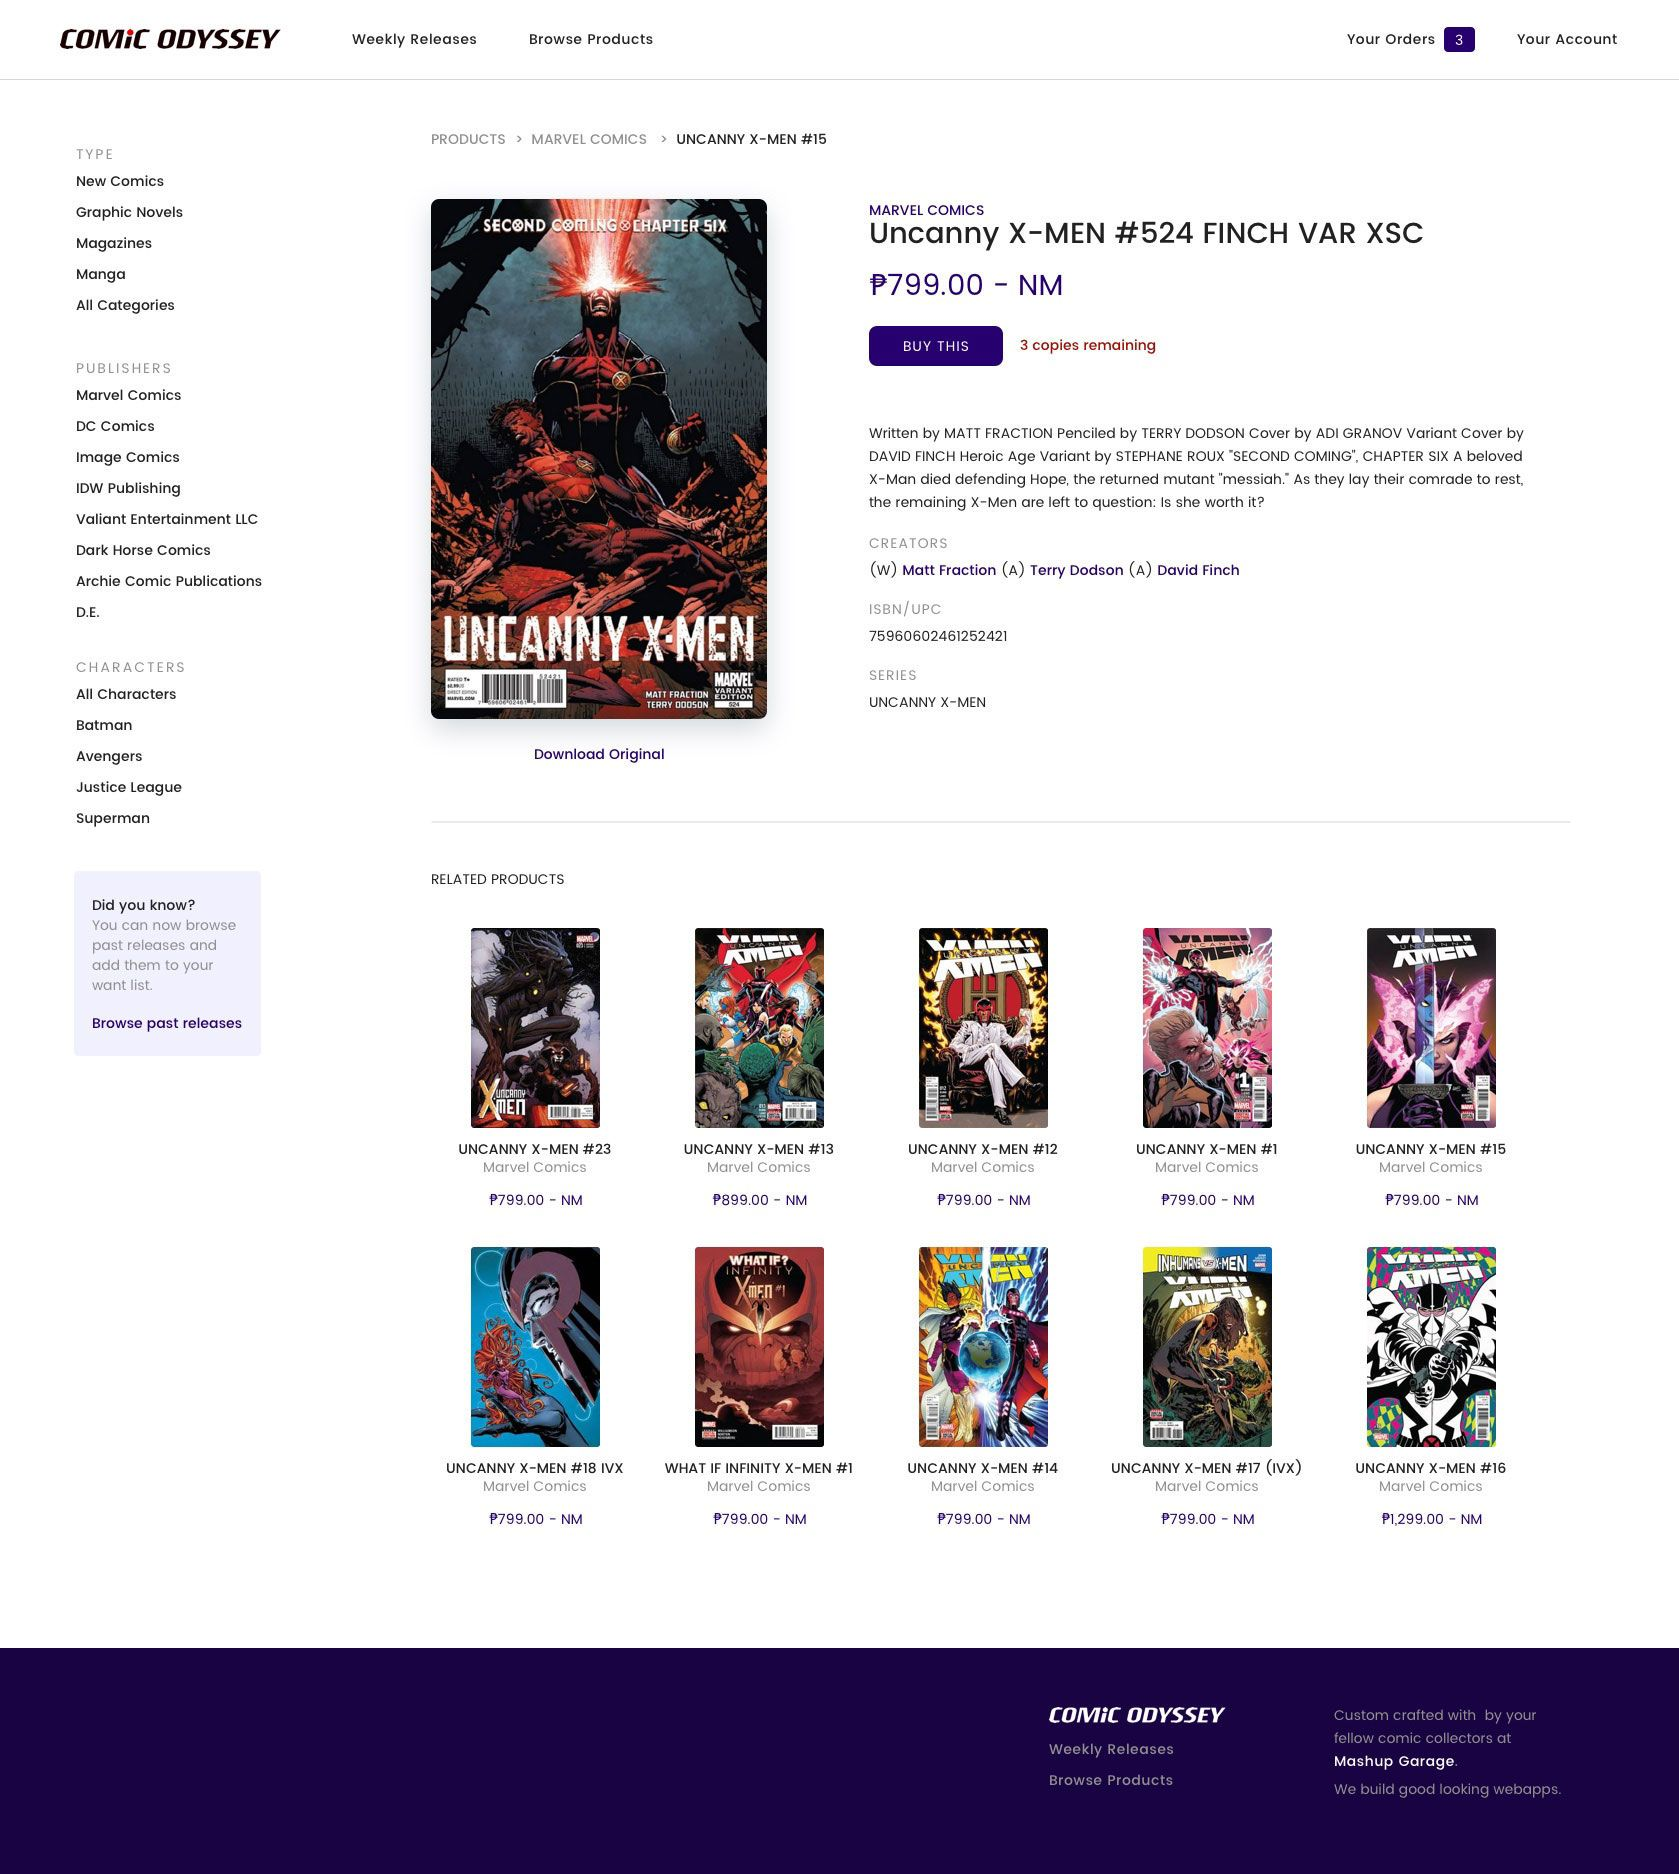 Comic Odyssey product page